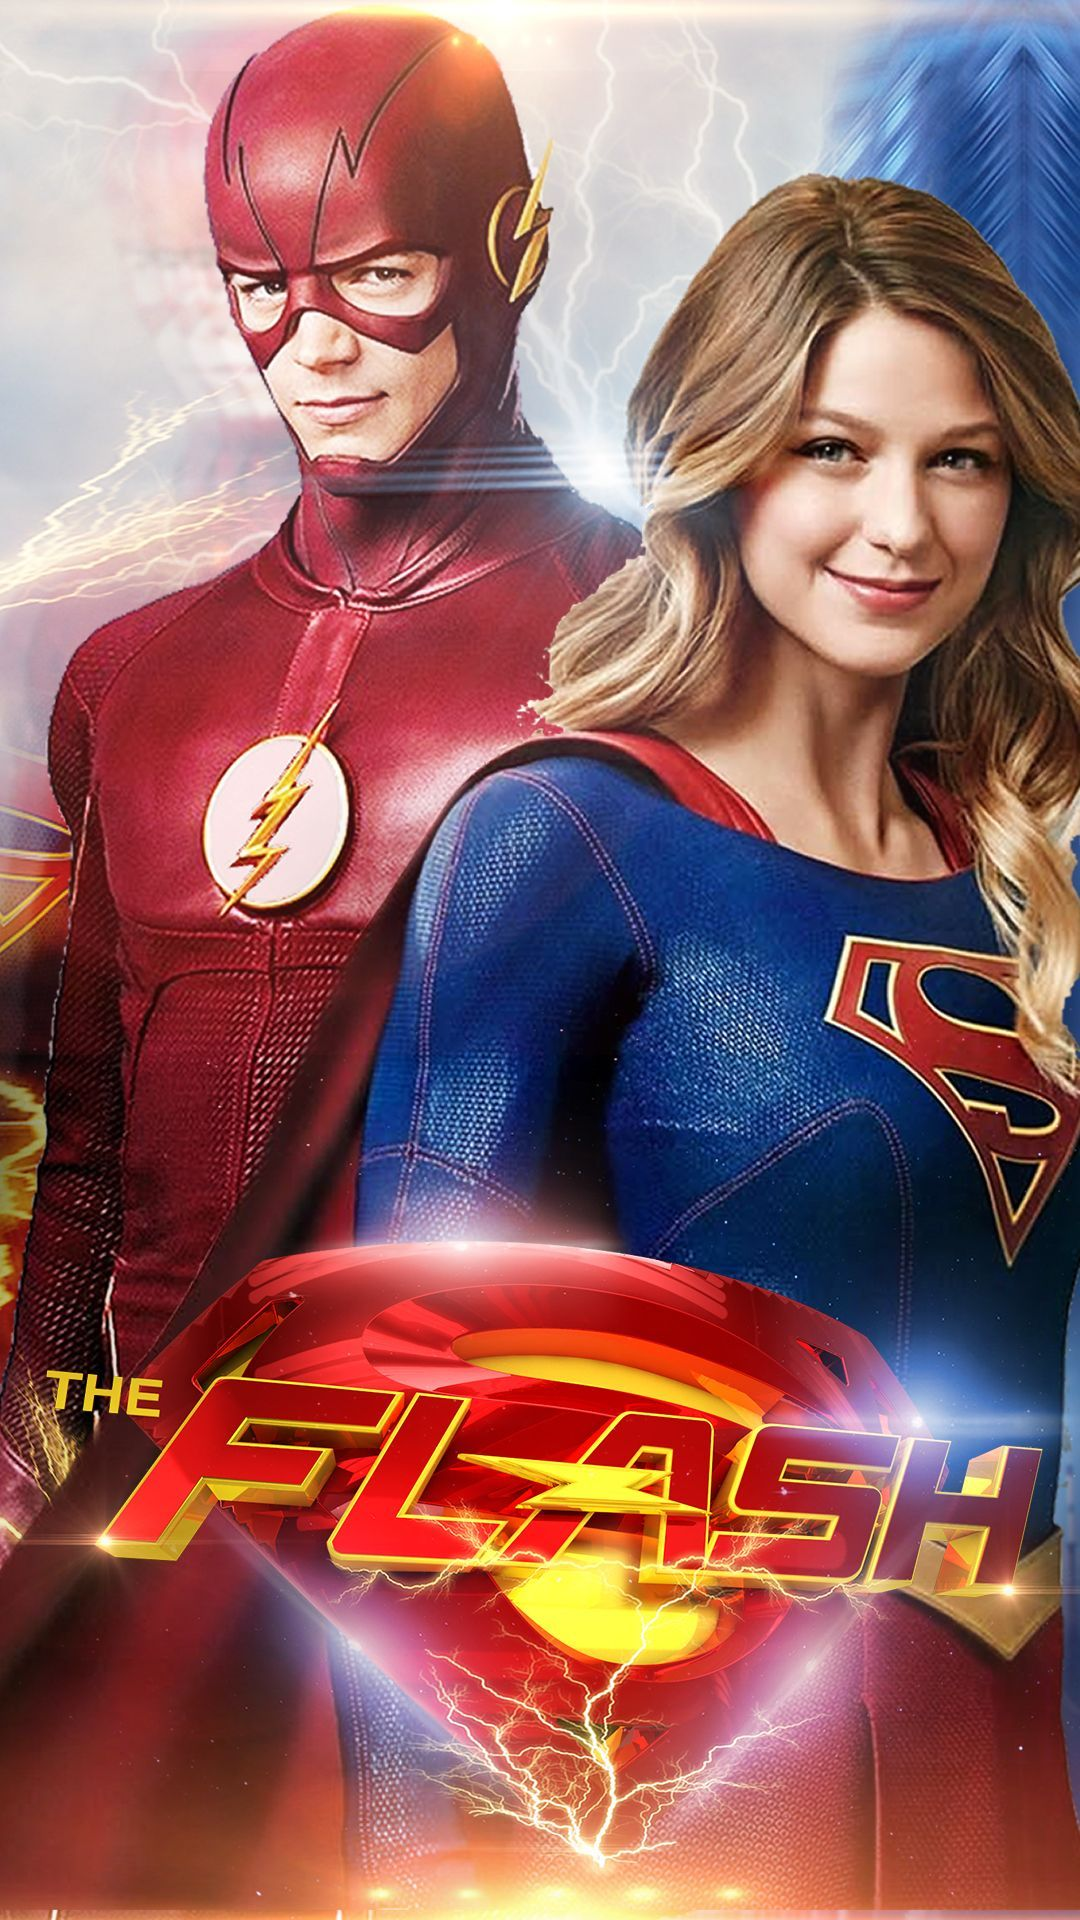 Supergirl Tv Show Iphone Wallpapers Top Free Supergirl Tv Show Iphone Backgrounds Wallpaperaccess